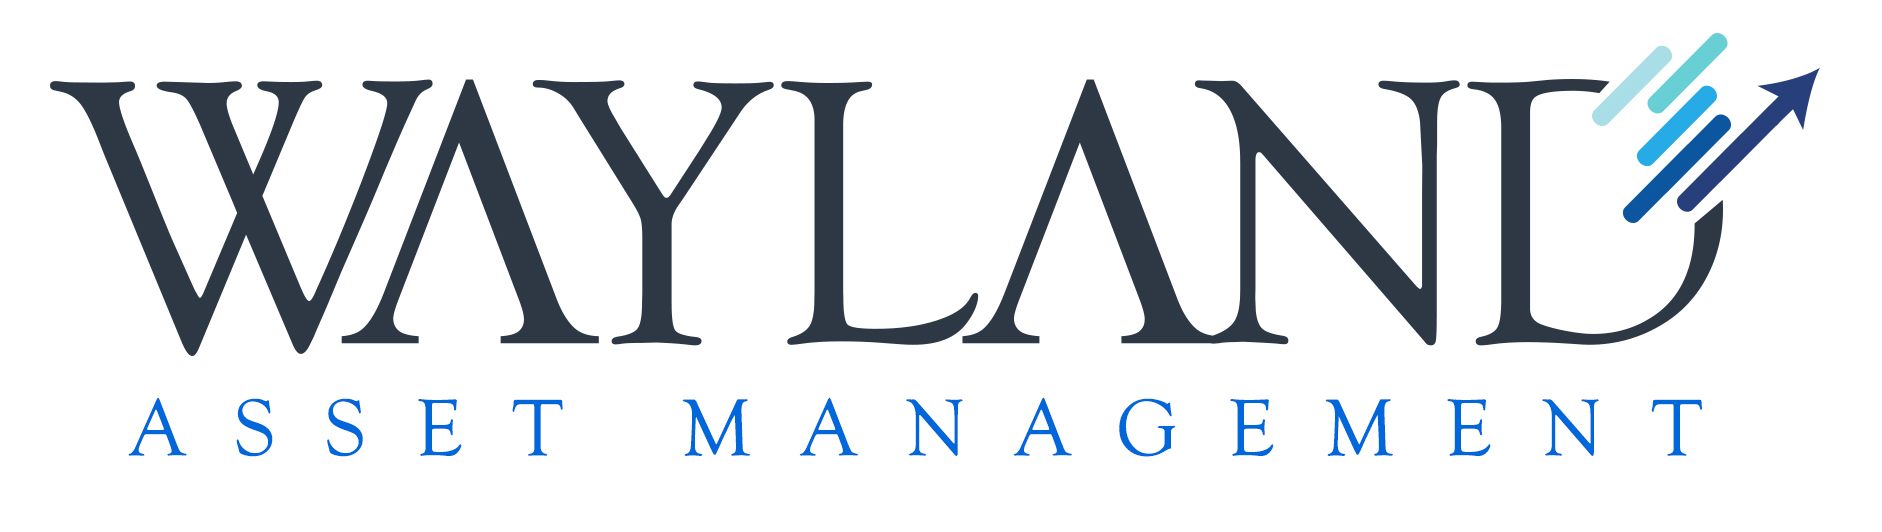 Wayland Asset Management to host Cyber-Security Protection Conference in Singapore on 20th August 2021